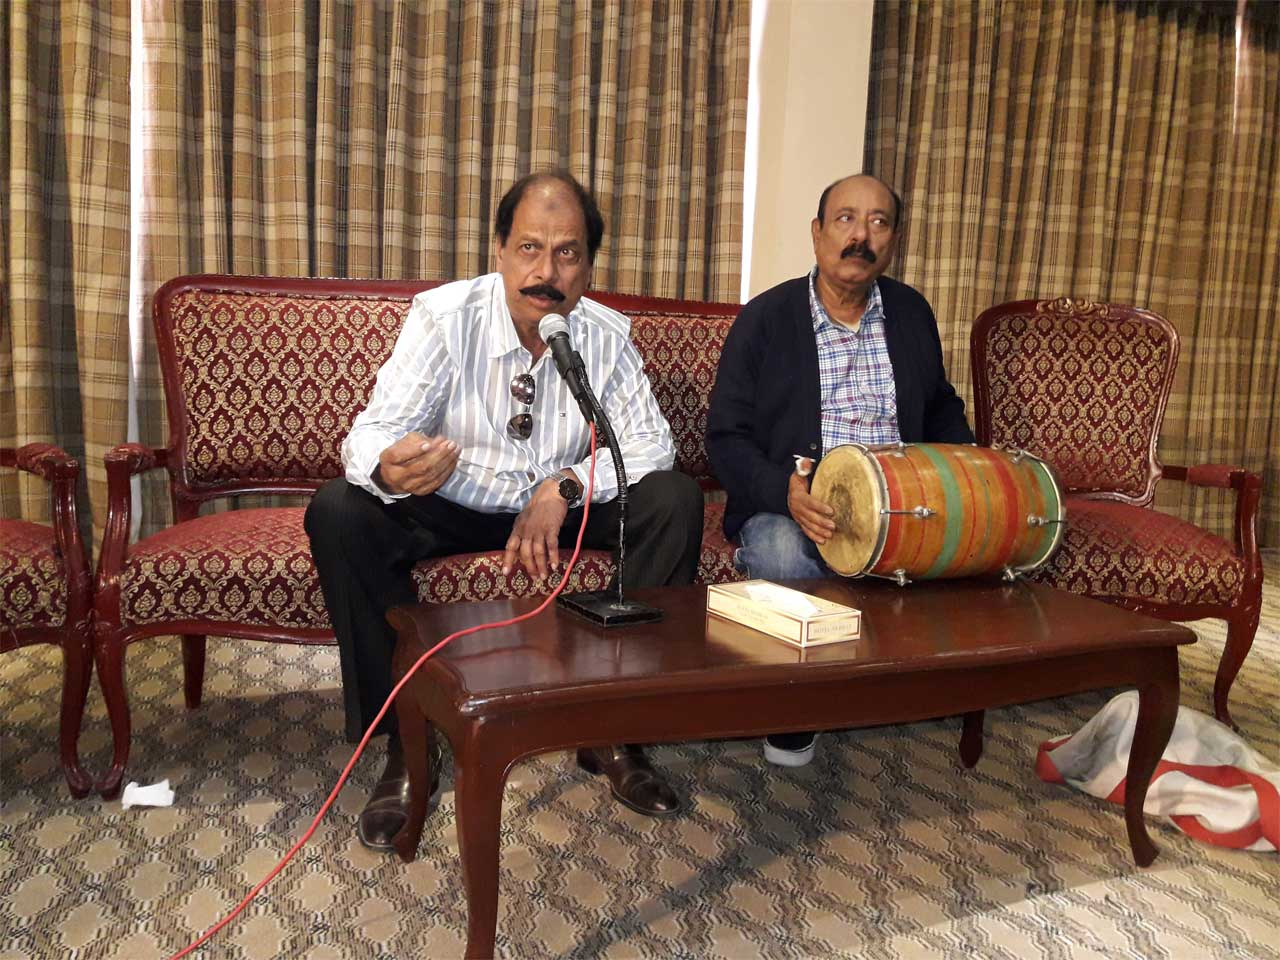 Iftikhar Baig is singing a song while Sabir Ali Khan is on Tabla